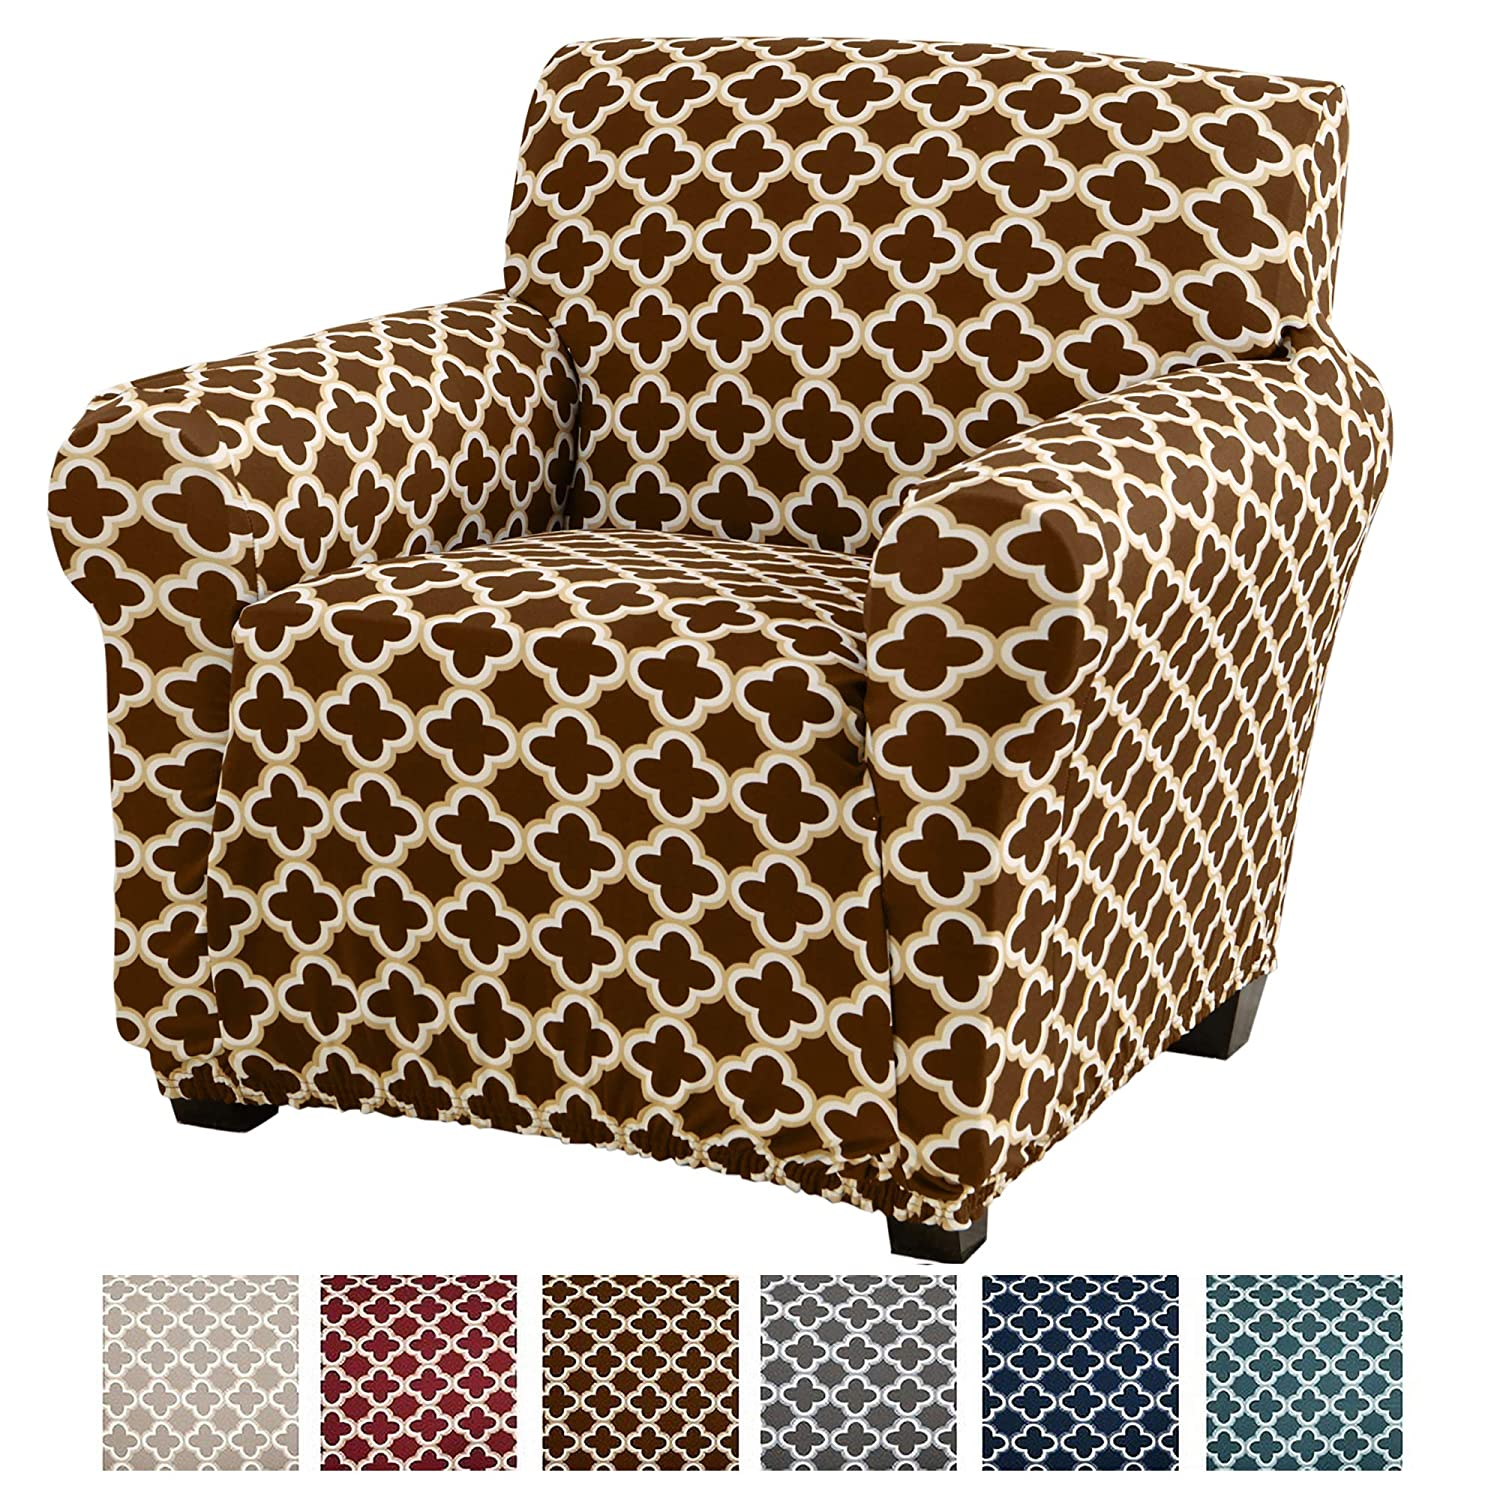 Home Fashion Designs Printed Stretch Arm Chair Furniture Cover Slipcover Brenna Collection, Chocolate